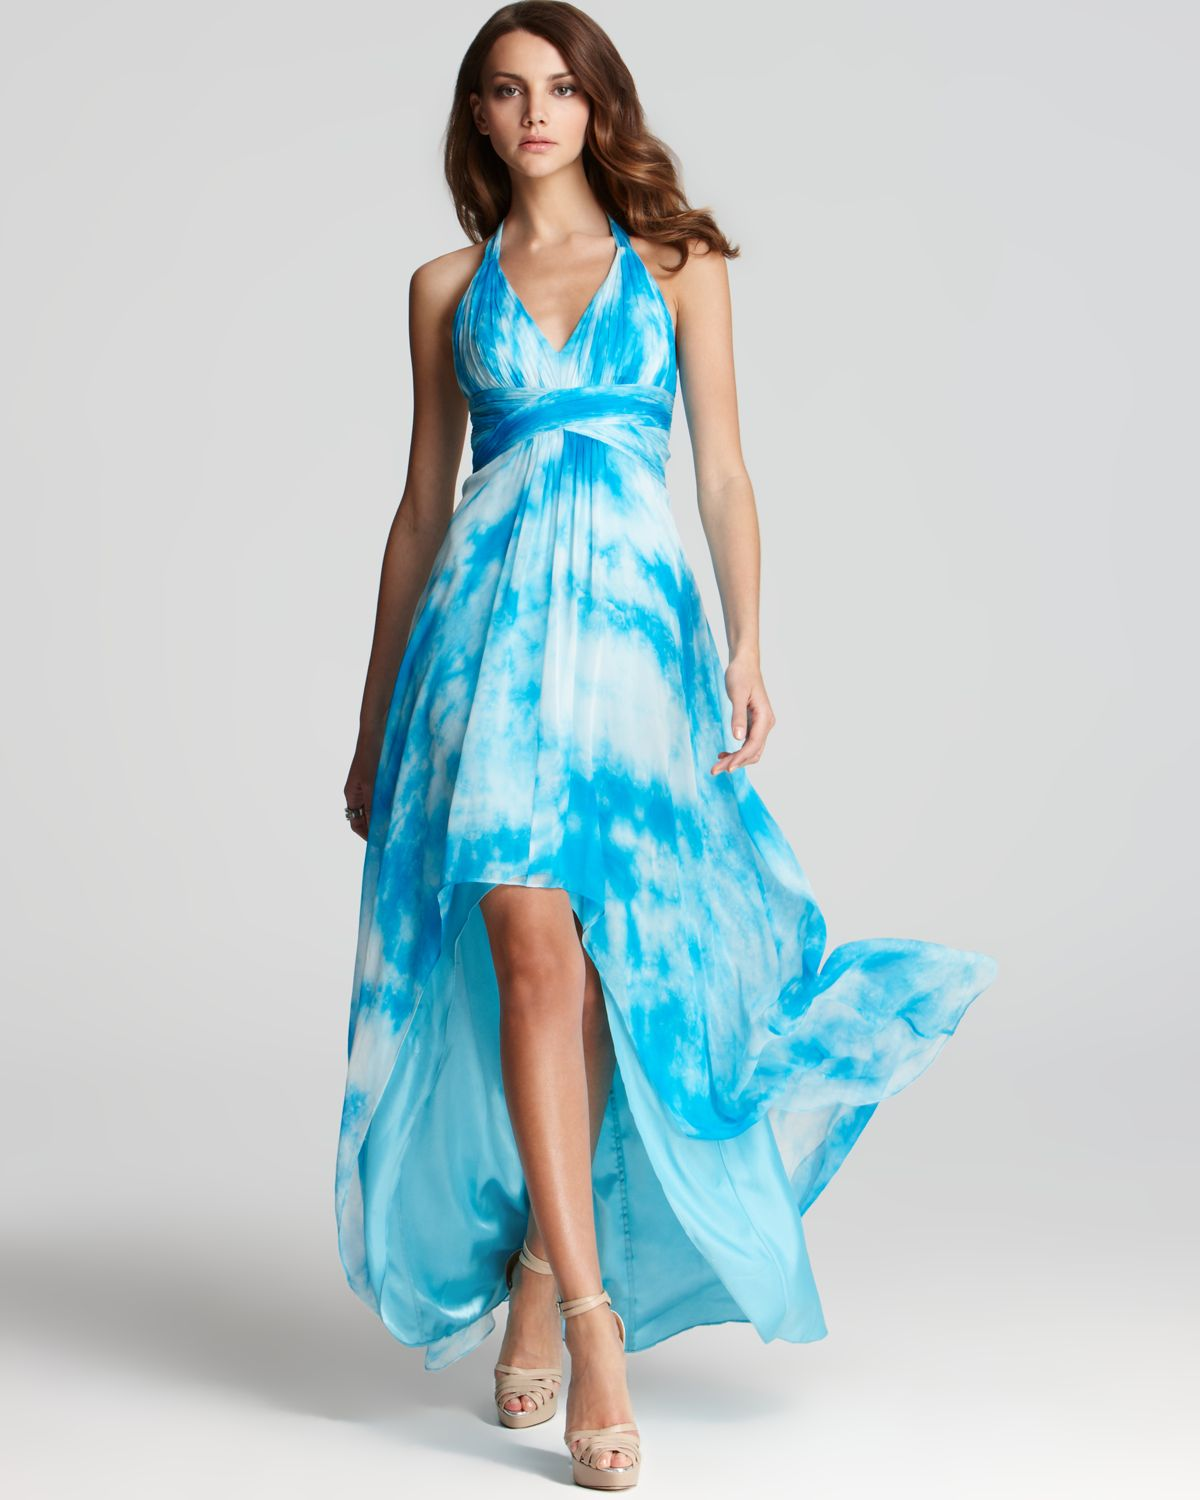 Aidan Mattox Prom Dress - Colorful Dress Images of Archive